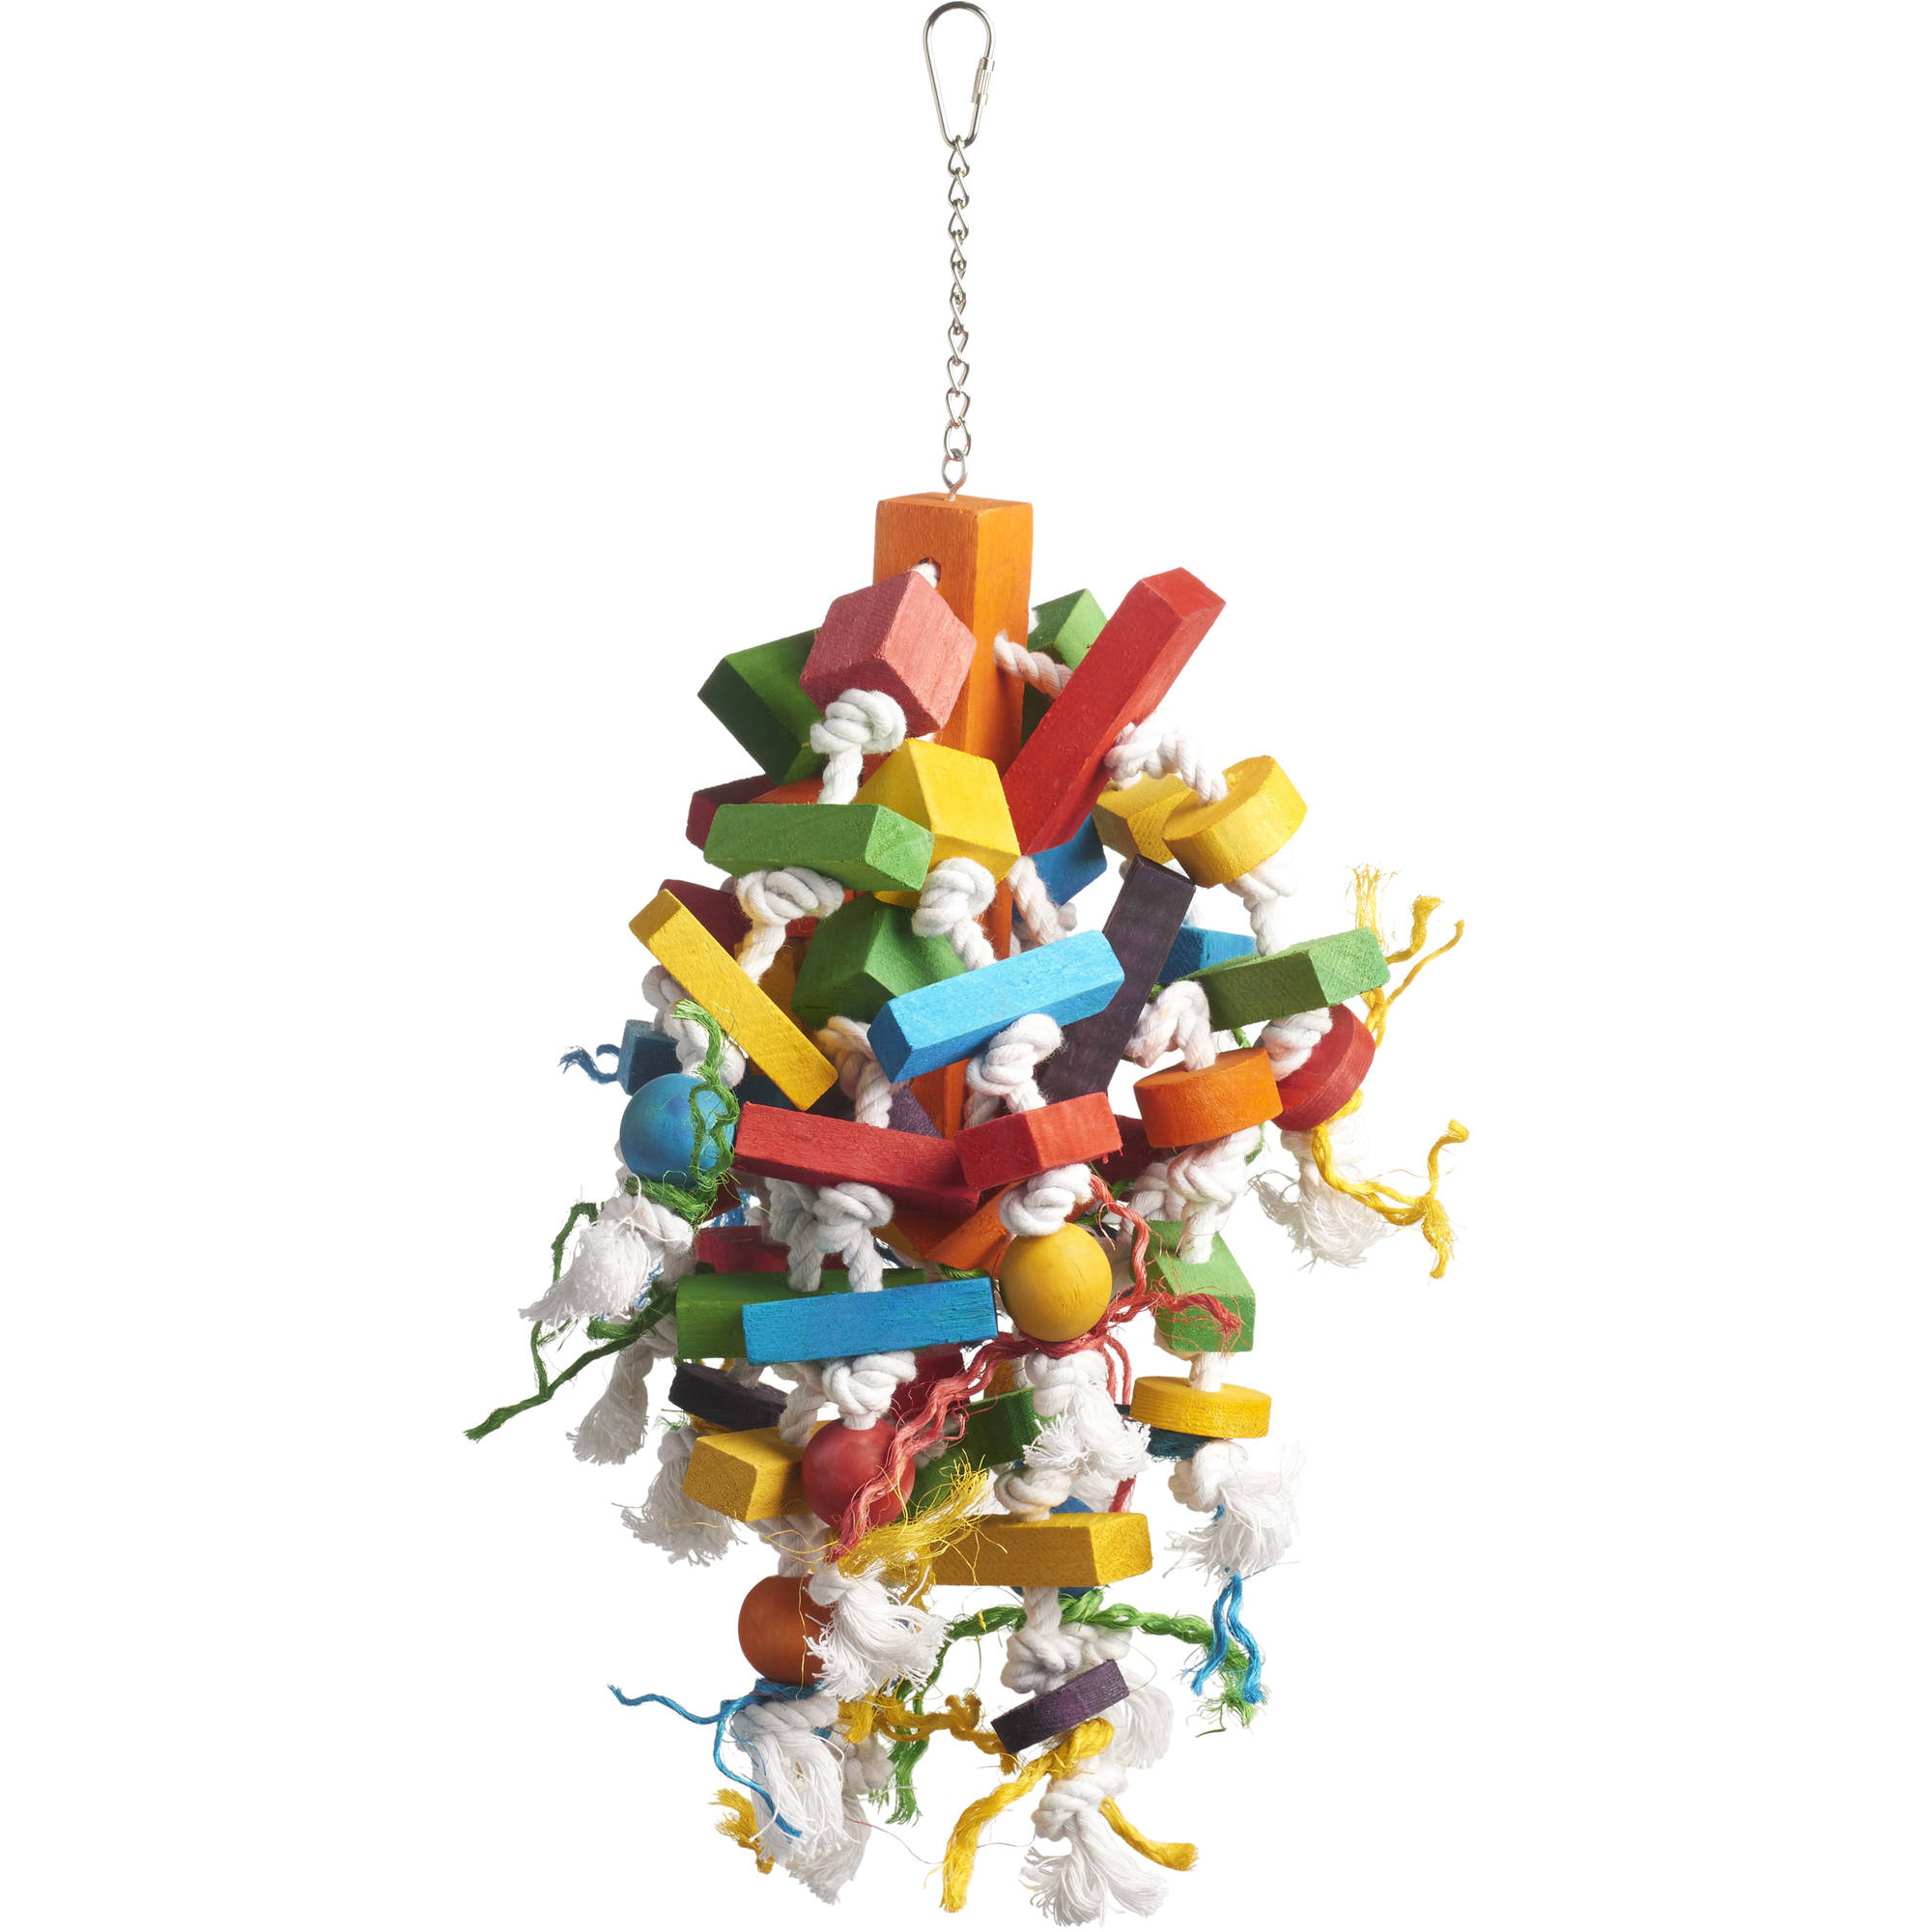 Prevue Pet Products Bodacious Bites Wizard Bird Toy, 60962